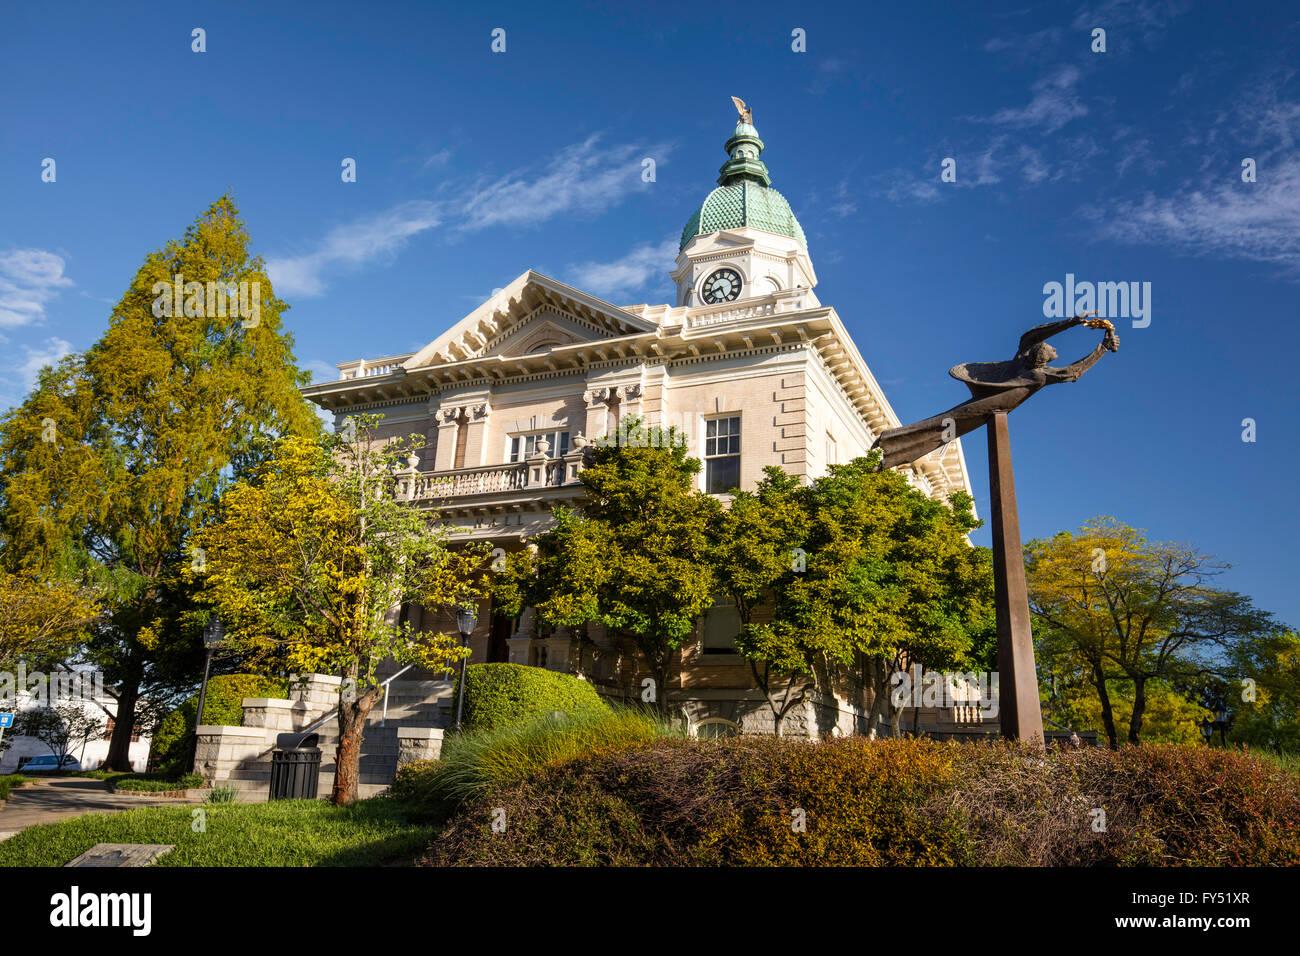 City Hall and 'Spirit of Athens' sculpture, Athens, Georgia, USA - Stock Image